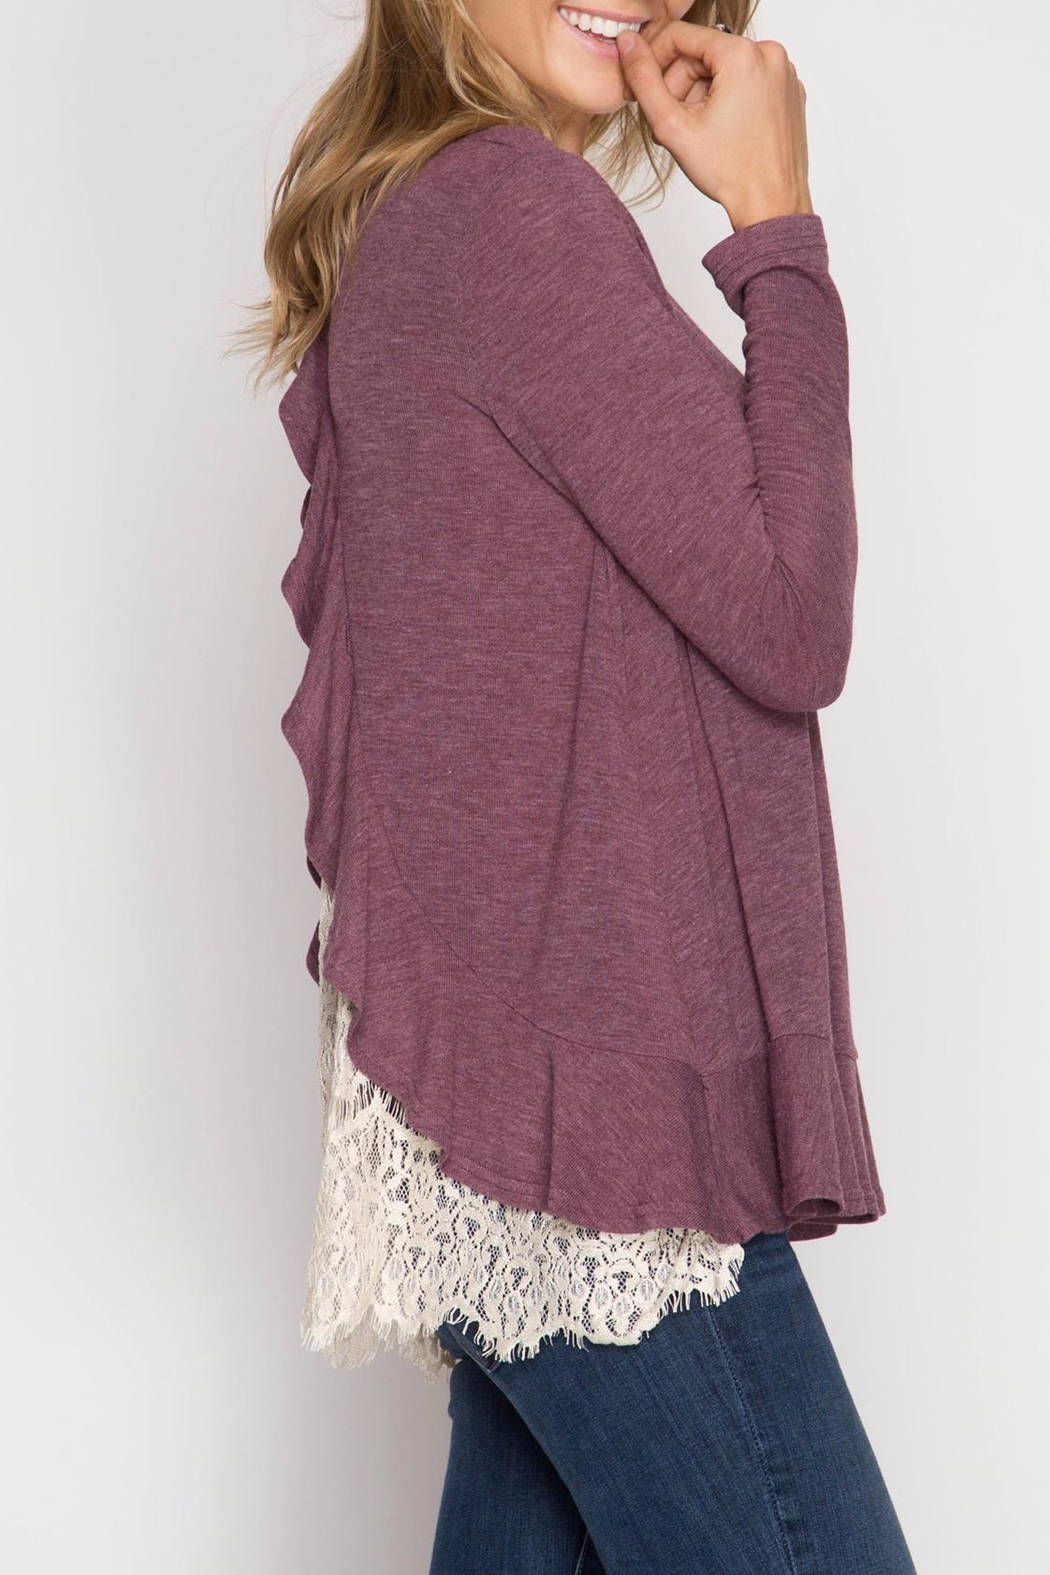 She + Sky Ruffle Lace Sweater - Back Cropped Image